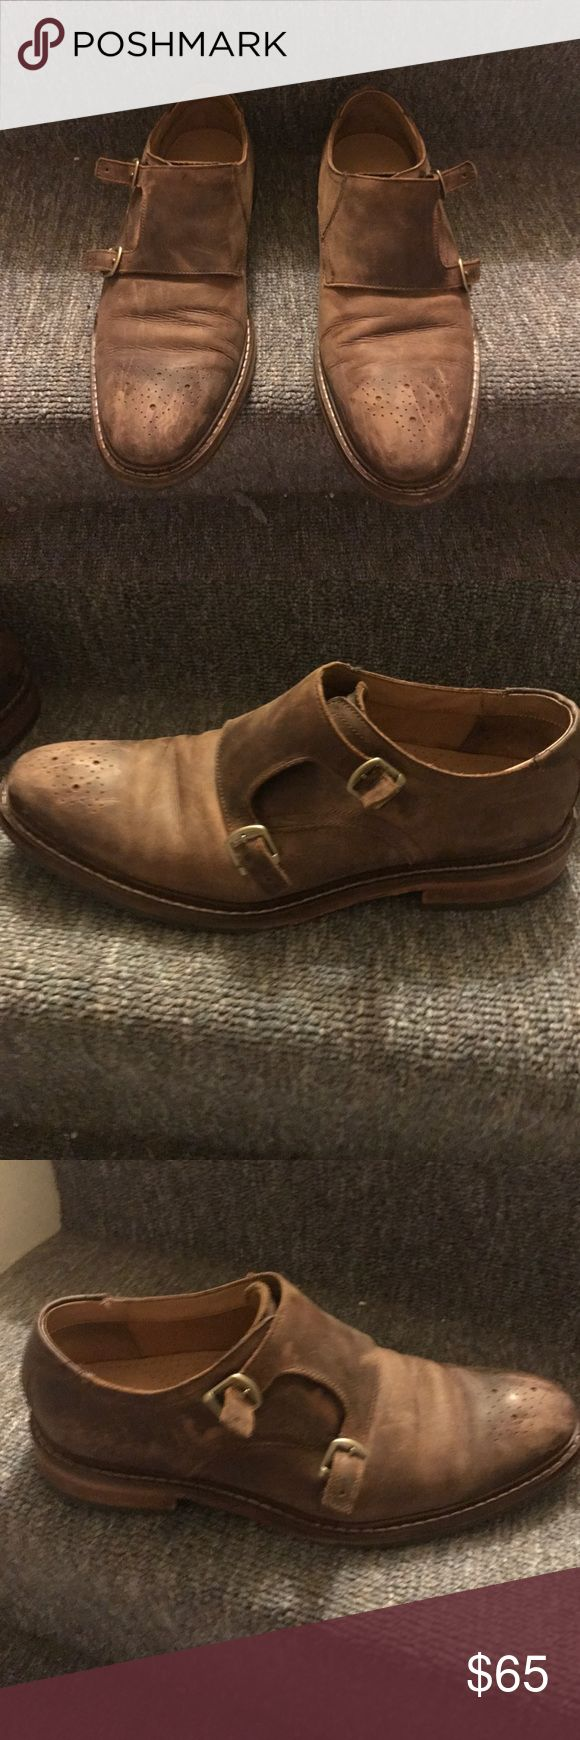 Cole Haan Dress Shoes Men's Size 9 Barely worn Cole Haan dress shoes! Super stylish- great for work of play. Cole Haan Shoes Oxfords & Derbys